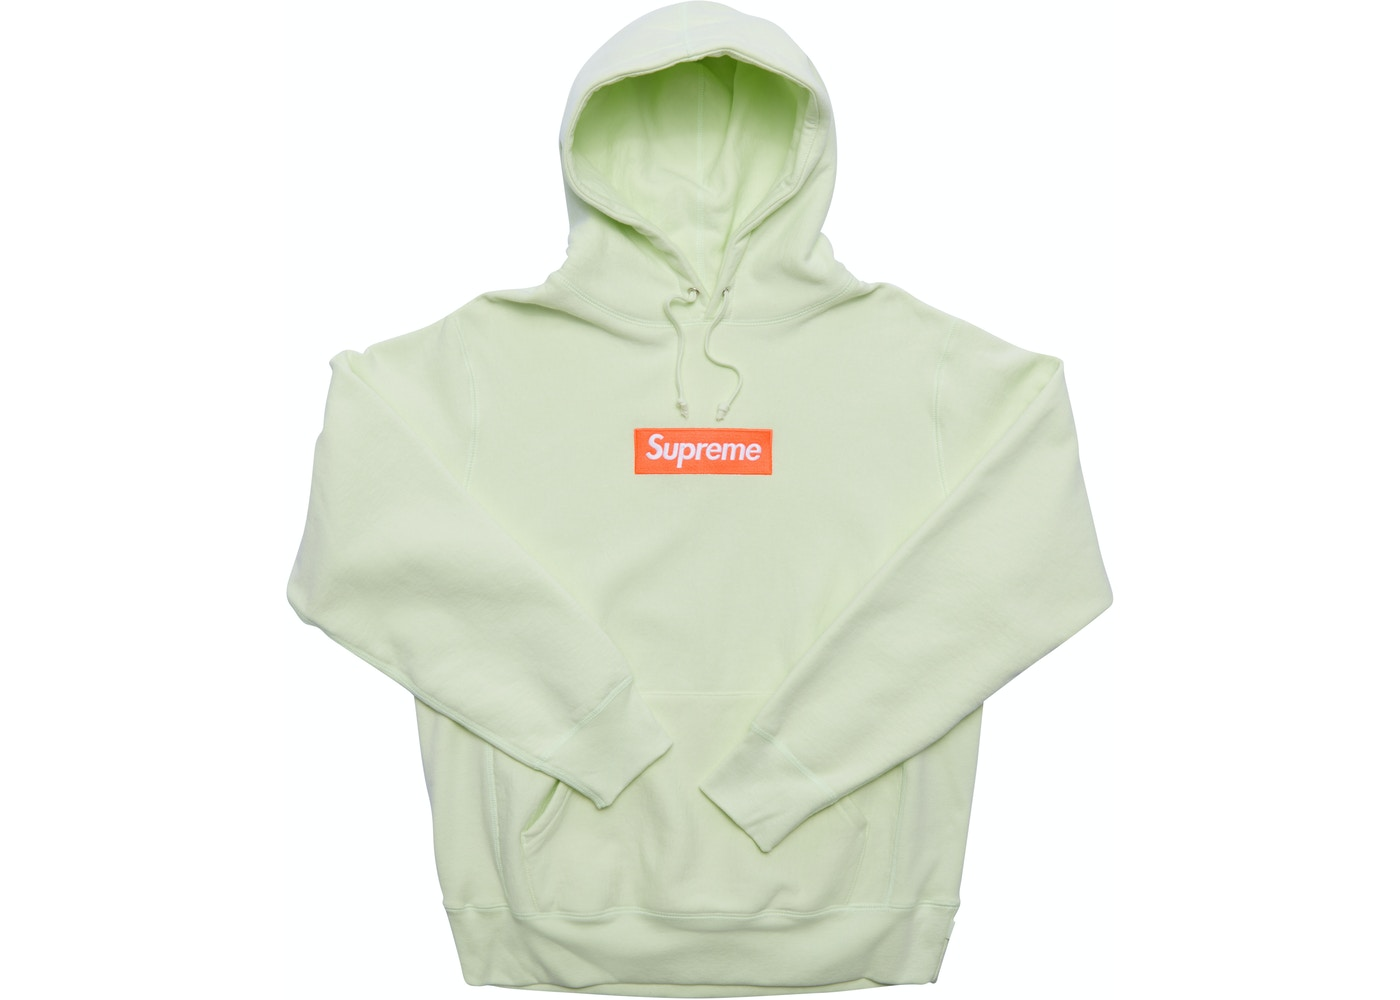 c698c5db Supreme Box Logo Hooded Sweatshirt (FW17) Pale Lime - FW17